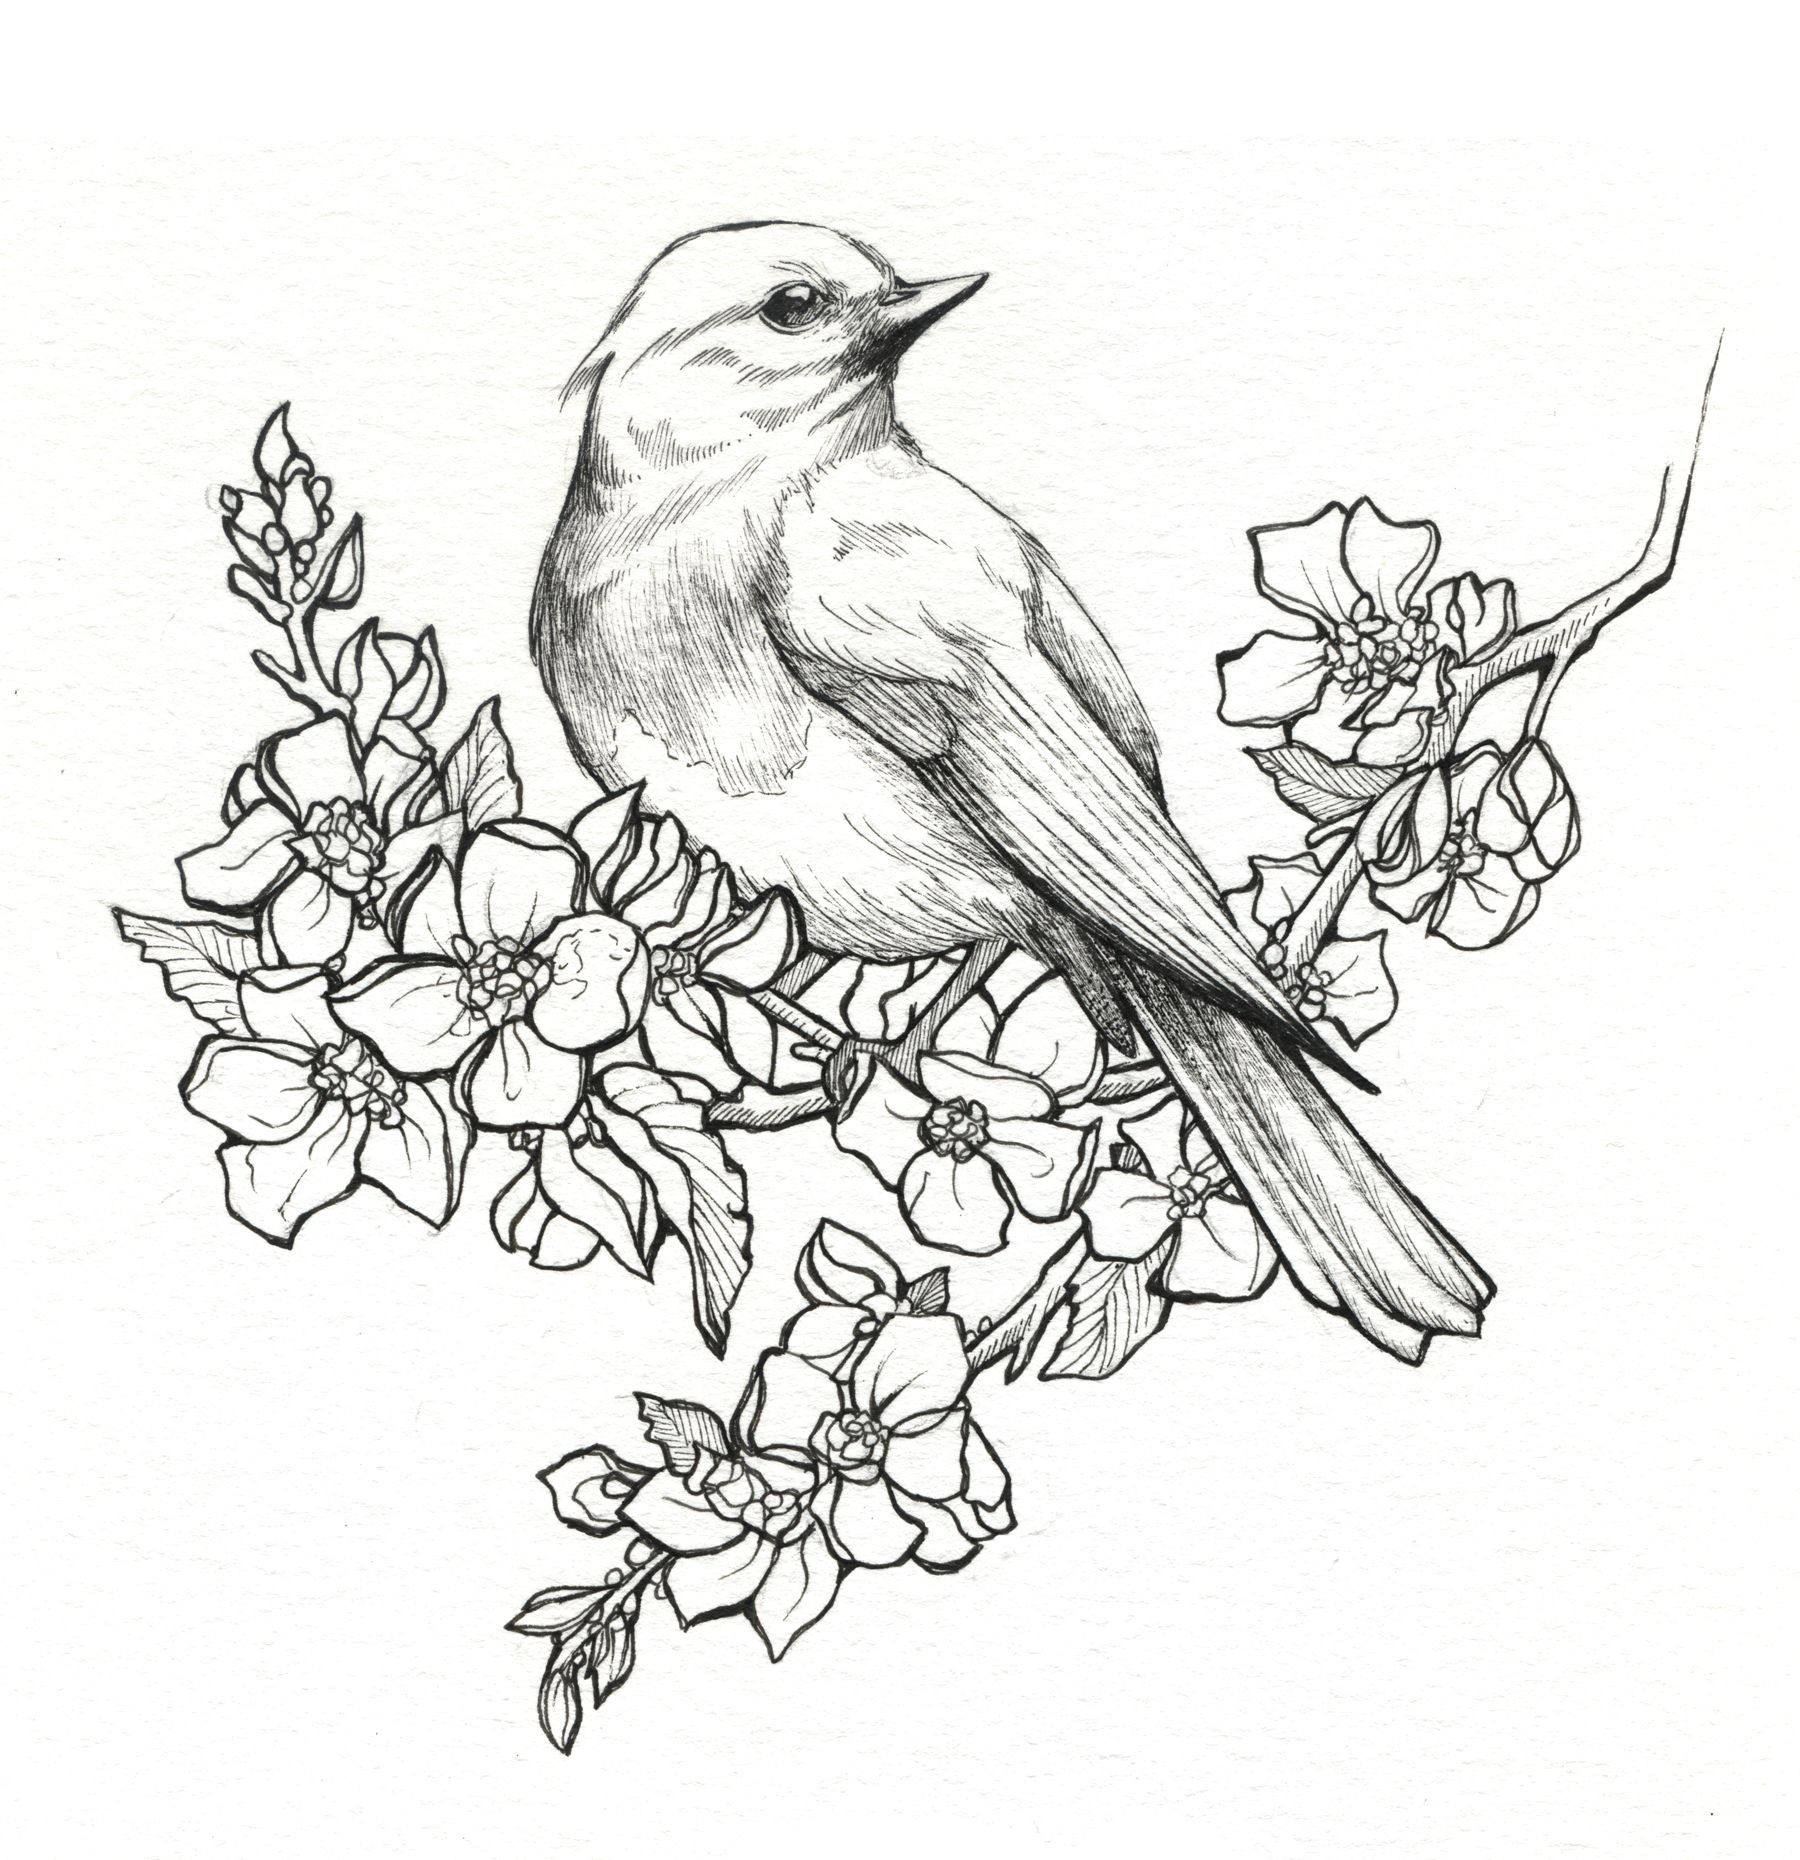 Painting Girls Apple Blossoms Picking Flowers Google Search Pencil Drawings Of Flowers Bird Drawings Bird Sketch